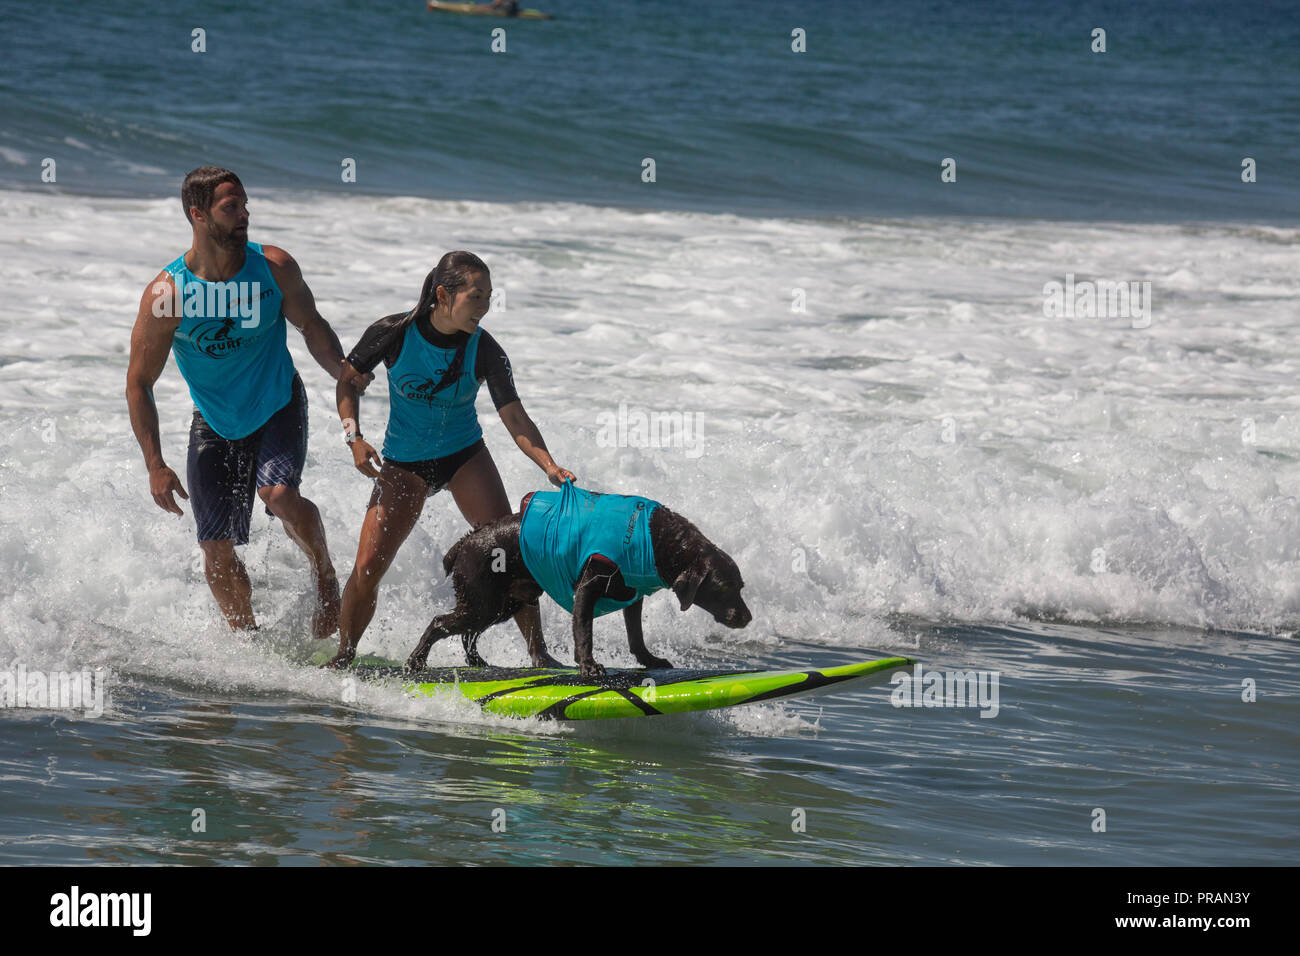 Huntington Beach, California, USA. 29th Sept, 2018. September 29, 2018 - San Diego-based Koa surfing tandem with owner Lee Chaille and friend at the Surf City Surf Dog Comptetition in Huntington Beach, CA, USA Credit: Kayte Deioma/Alamy Live News - Stock Image